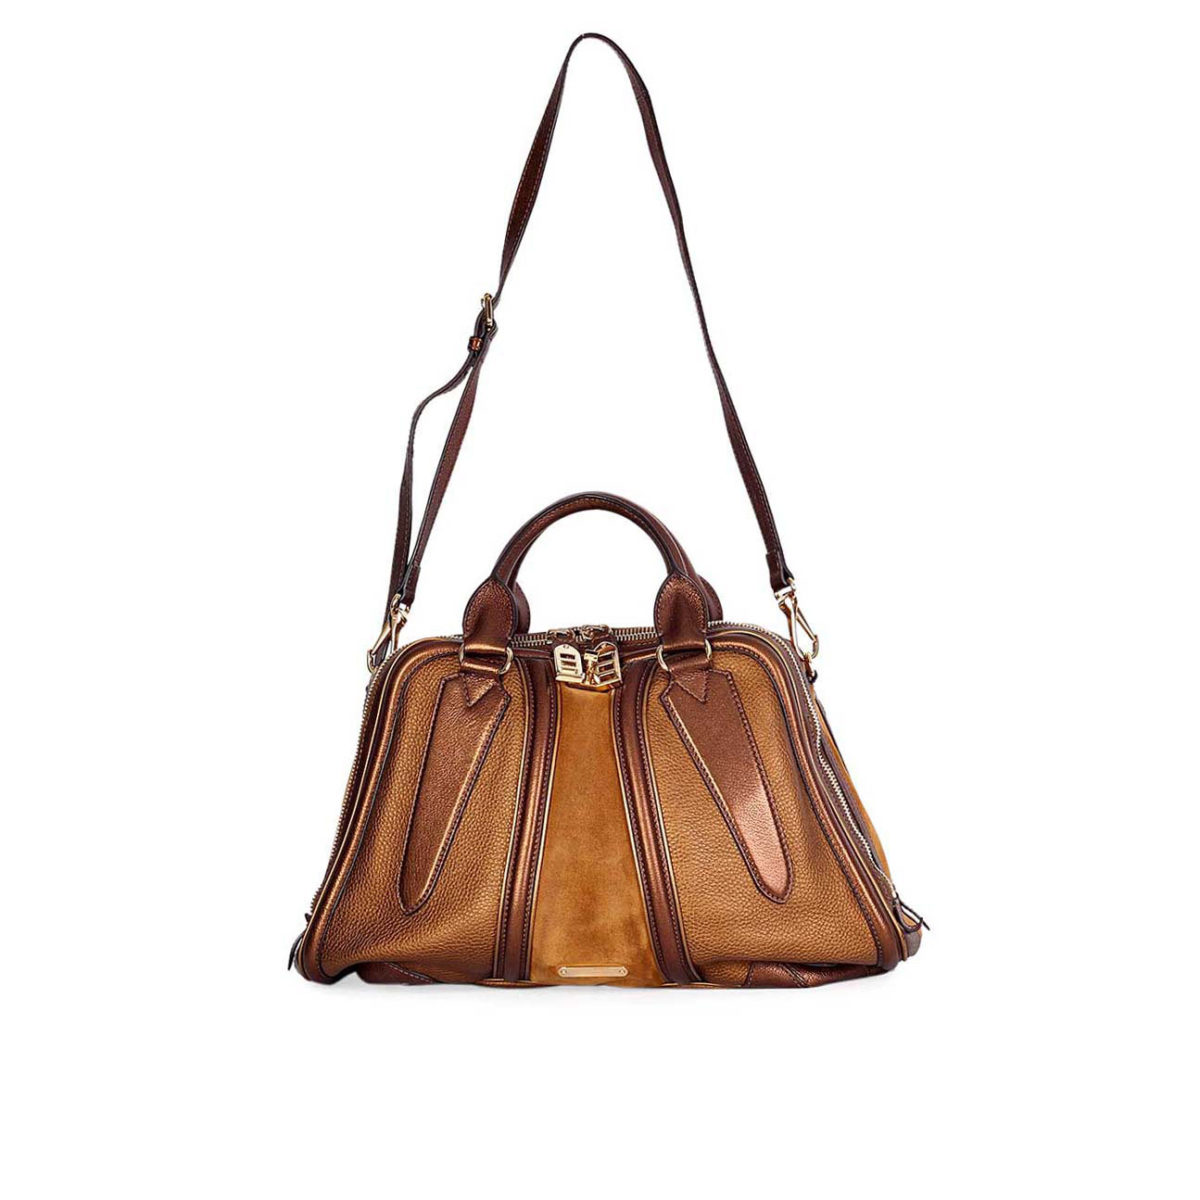 71886a3dc281 BURBERRY Metallic Leather   Suede Bowling bag